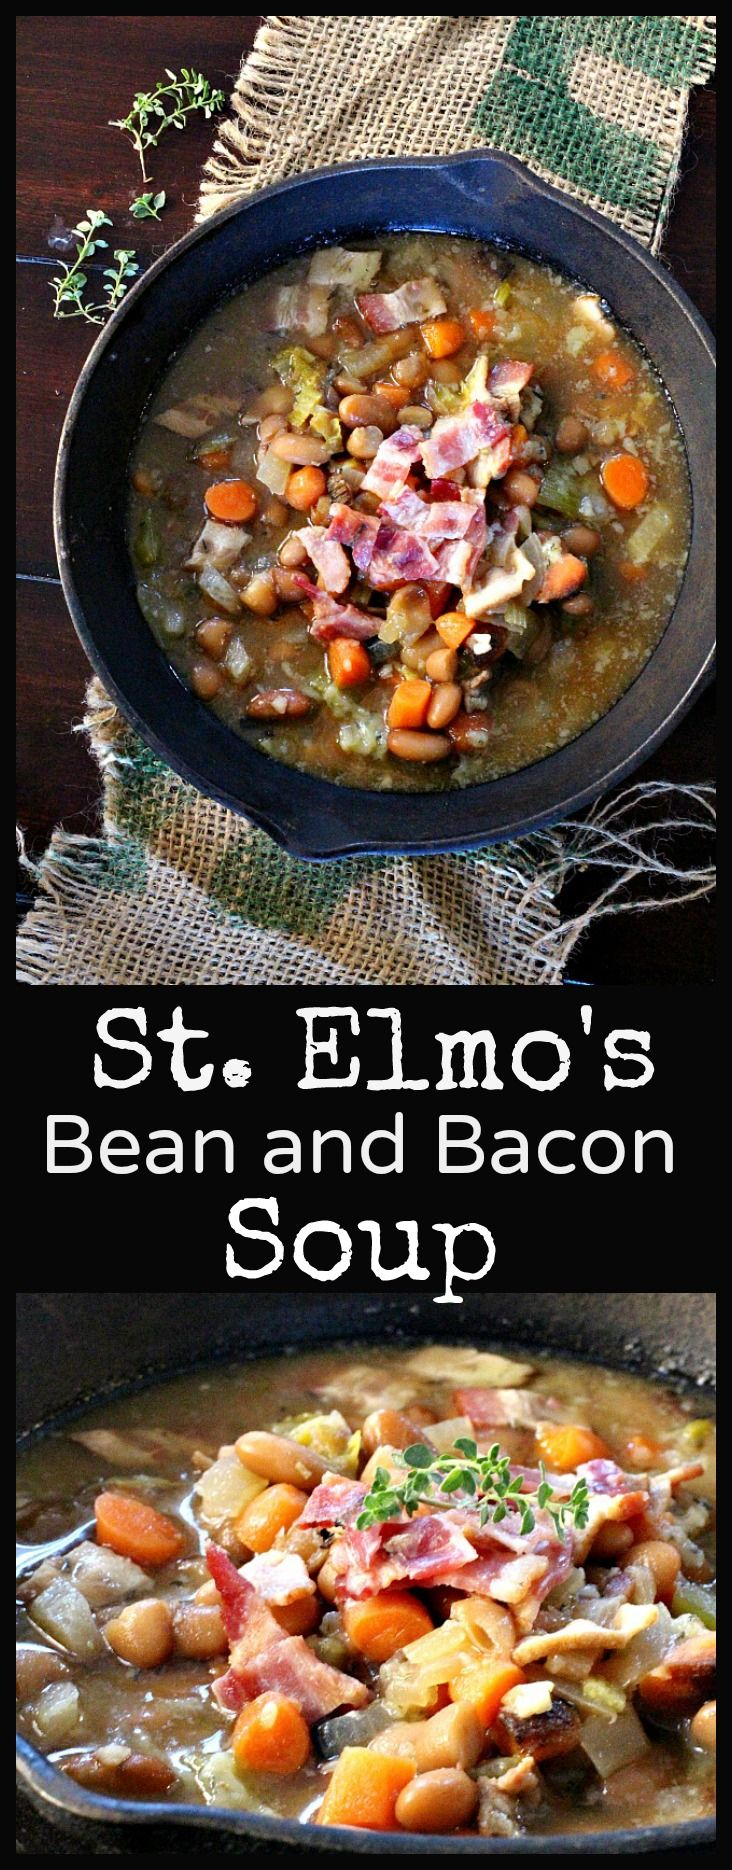 White bean soup. White beans are flavored with herbs, carrots and celery. Add some bacon and you've got a perfect soup for a crisp Fall evening.